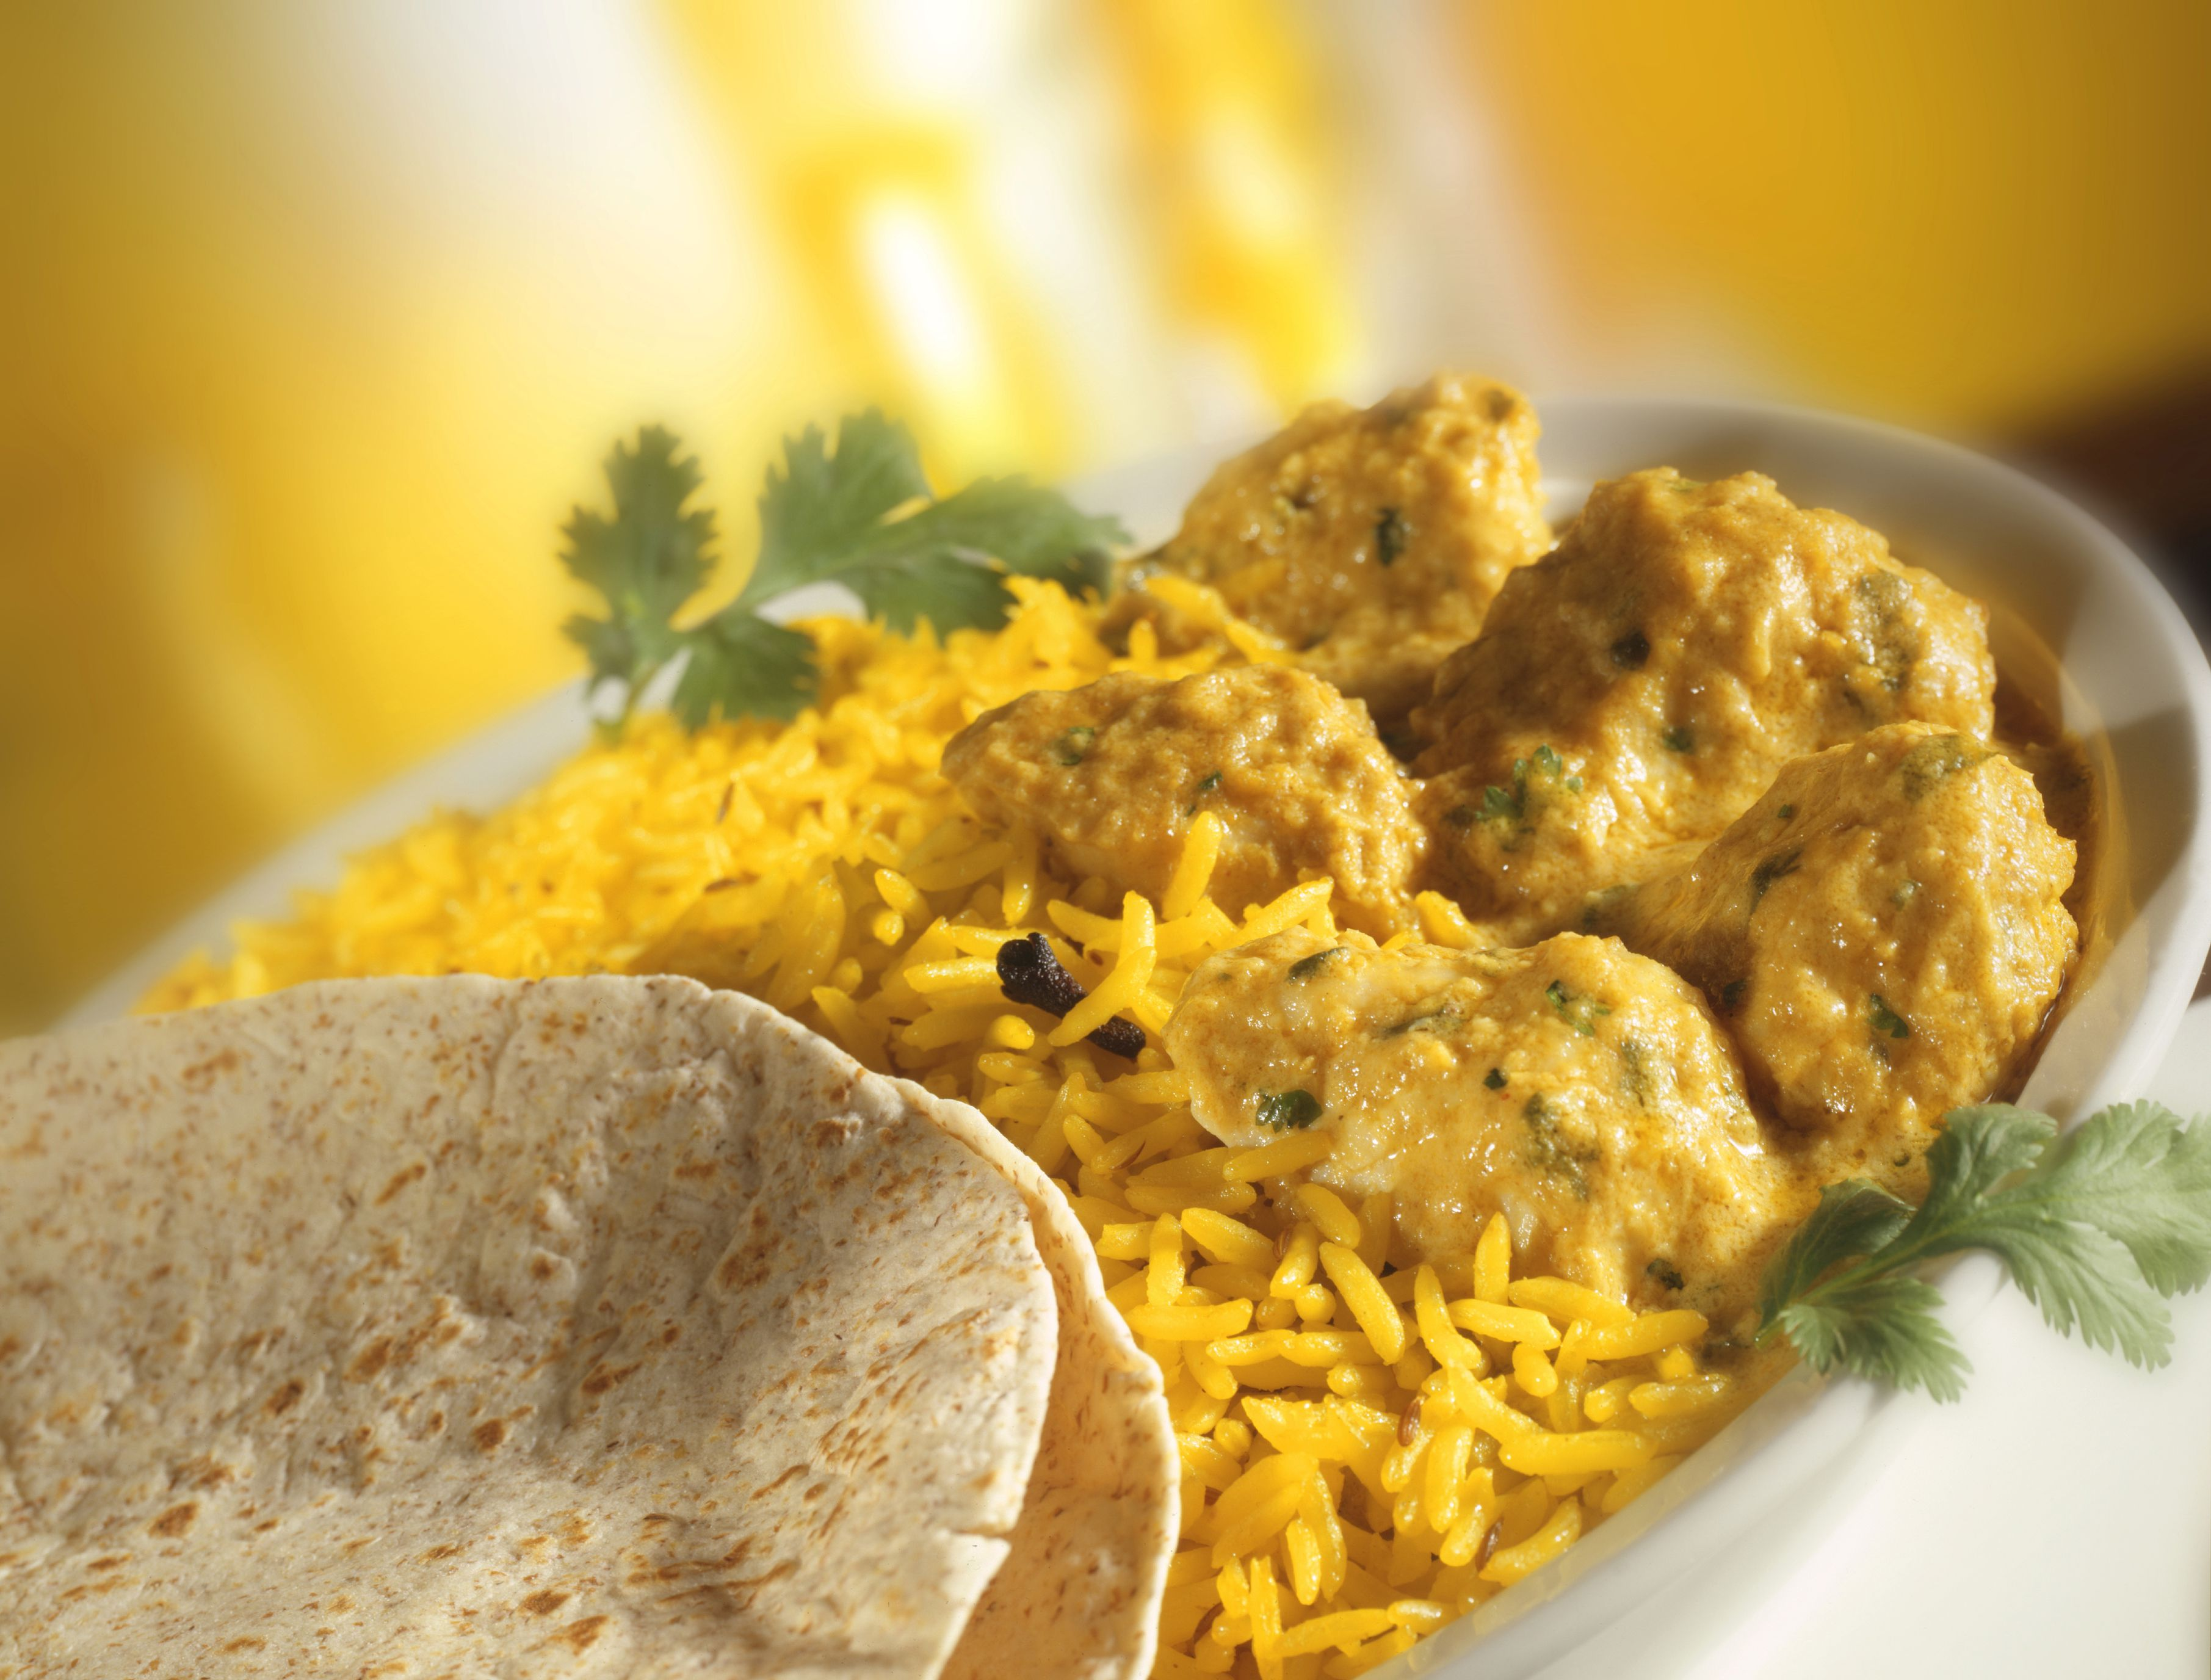 Mughlai chicken with gravy recipe try this authentic north indian chicken korma recipe tonight forumfinder Image collections